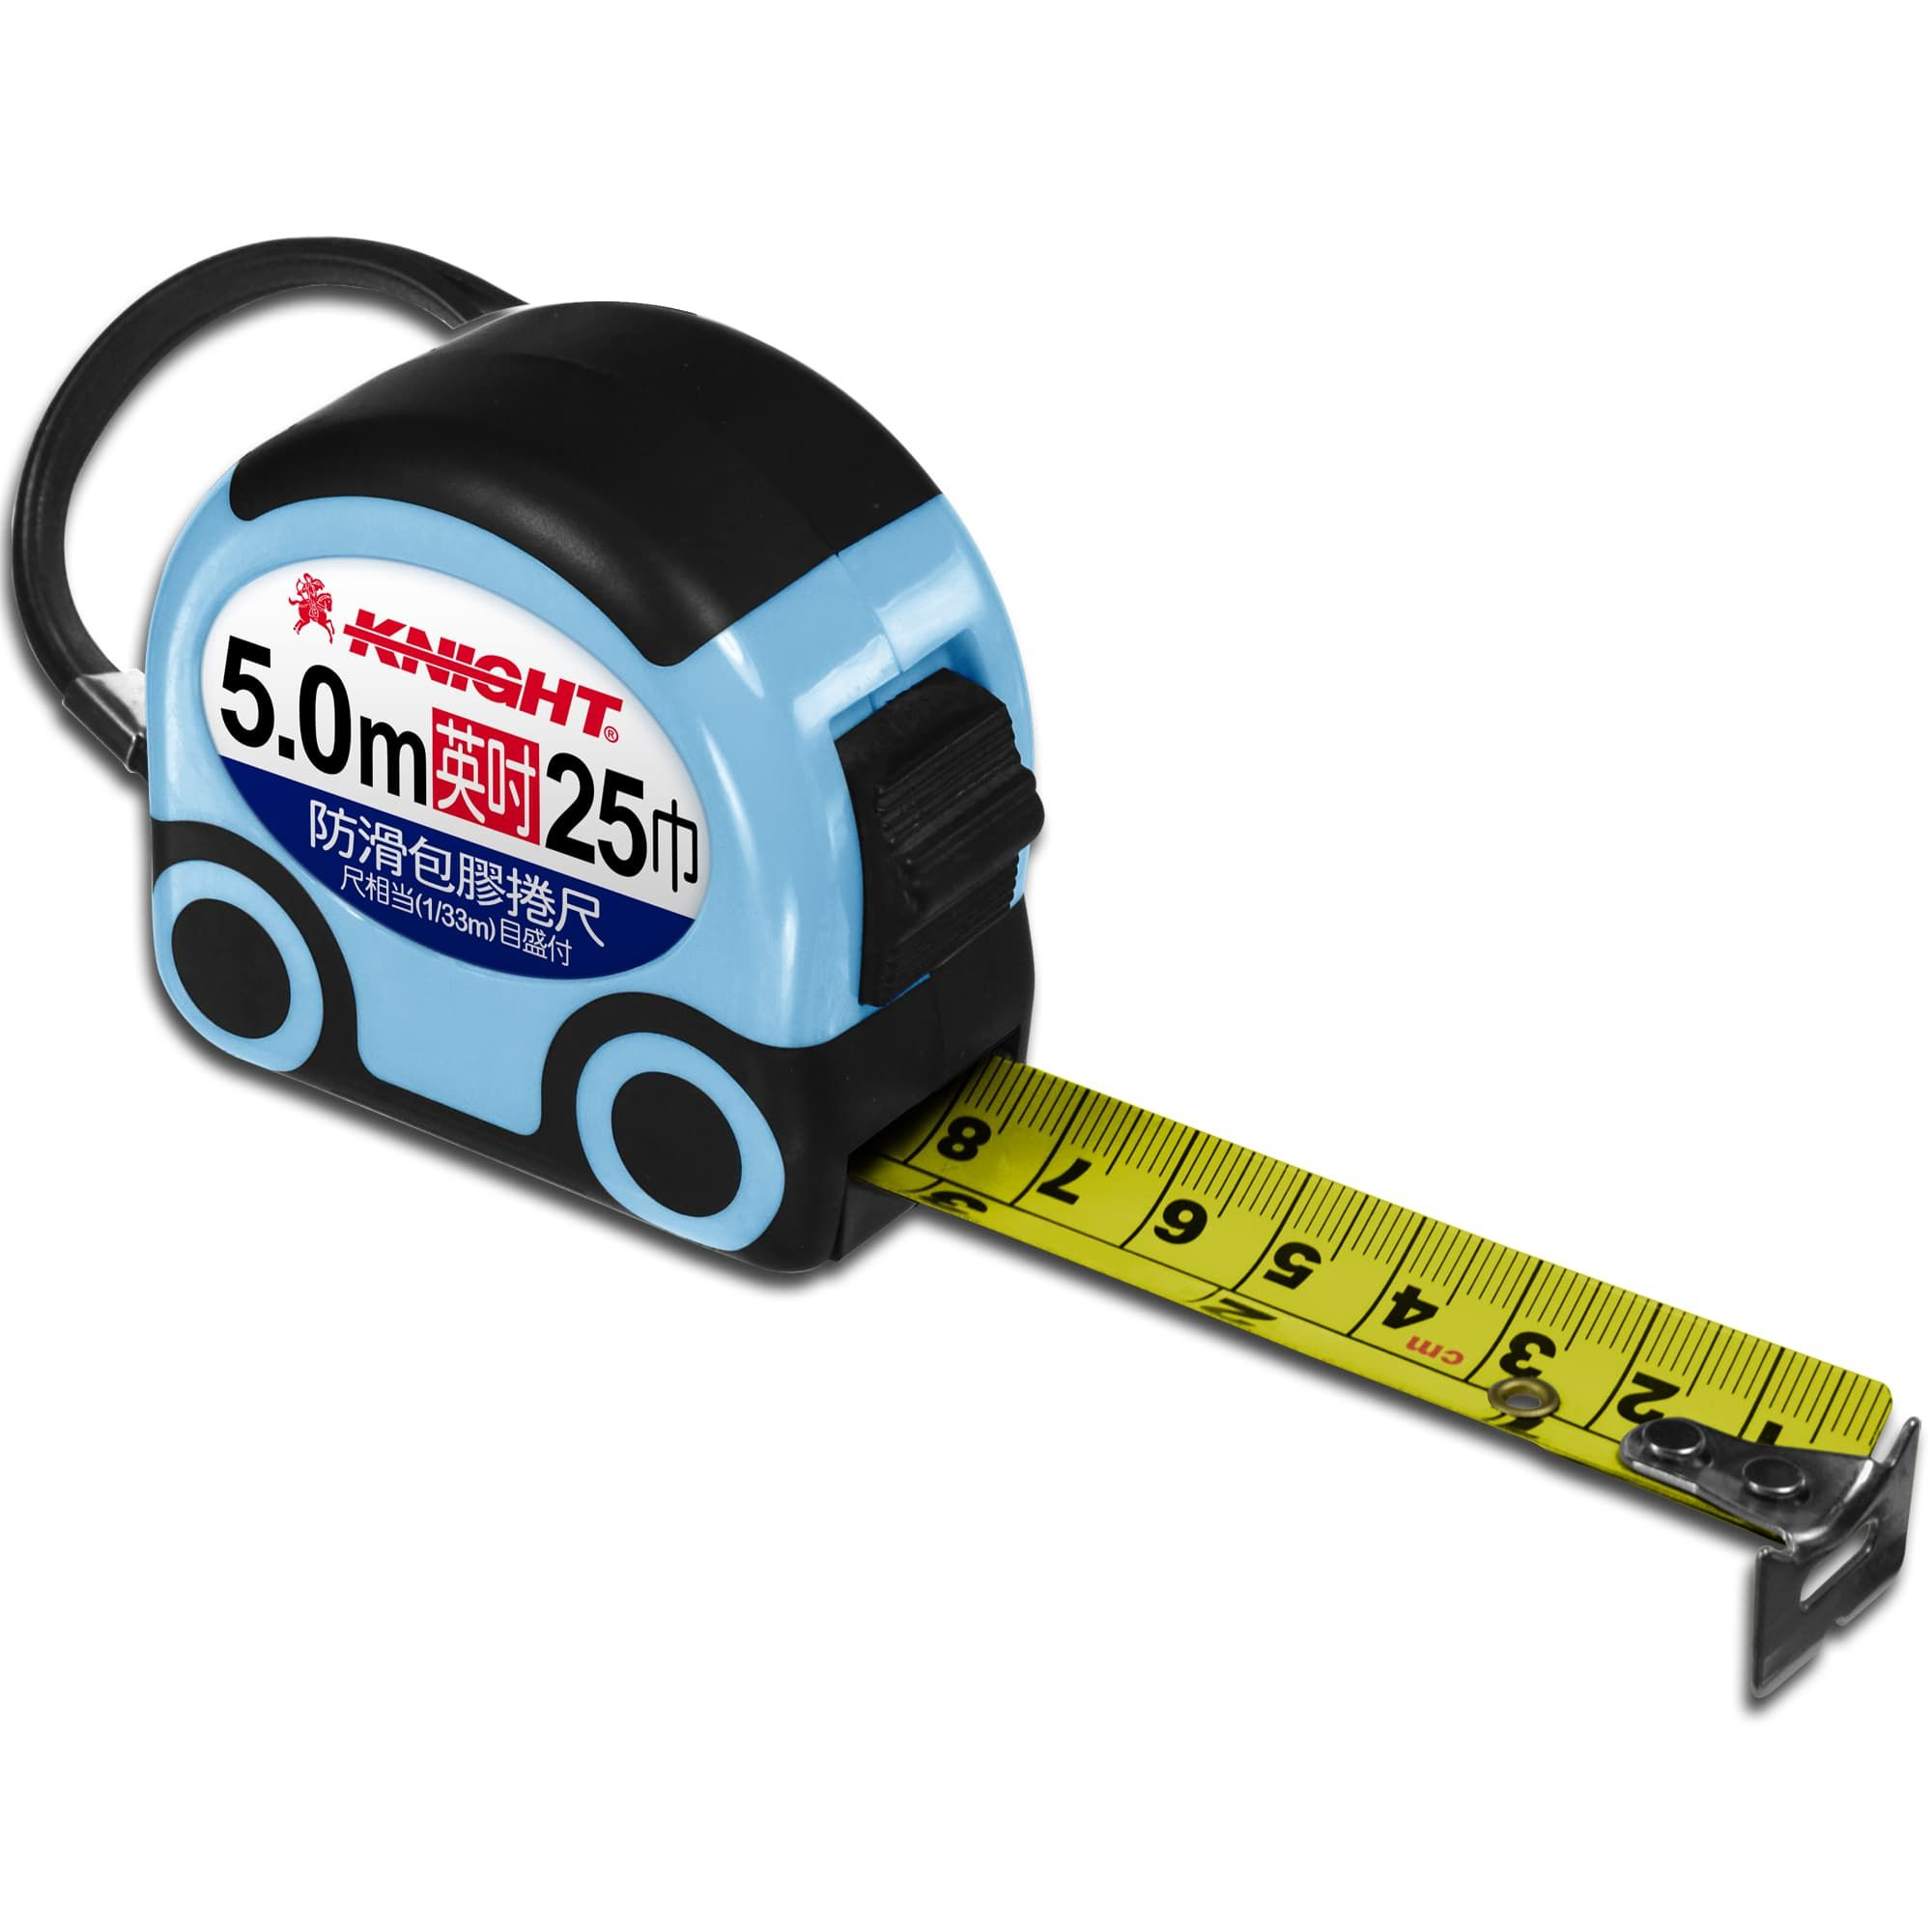 Easy To Read Scale Markings Retractable Tape Measure